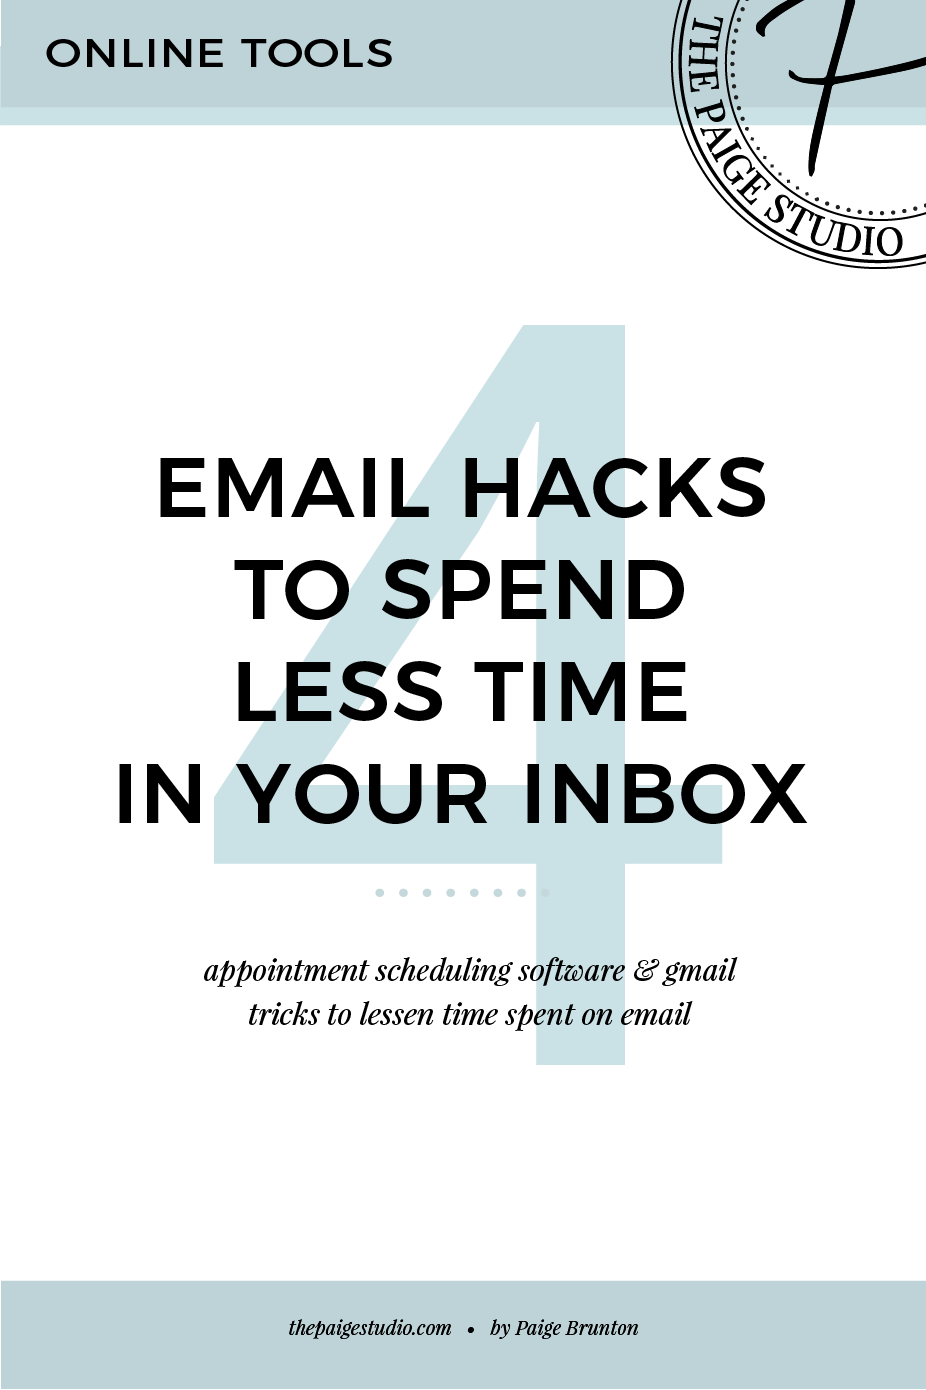 Time-saving hacks for email